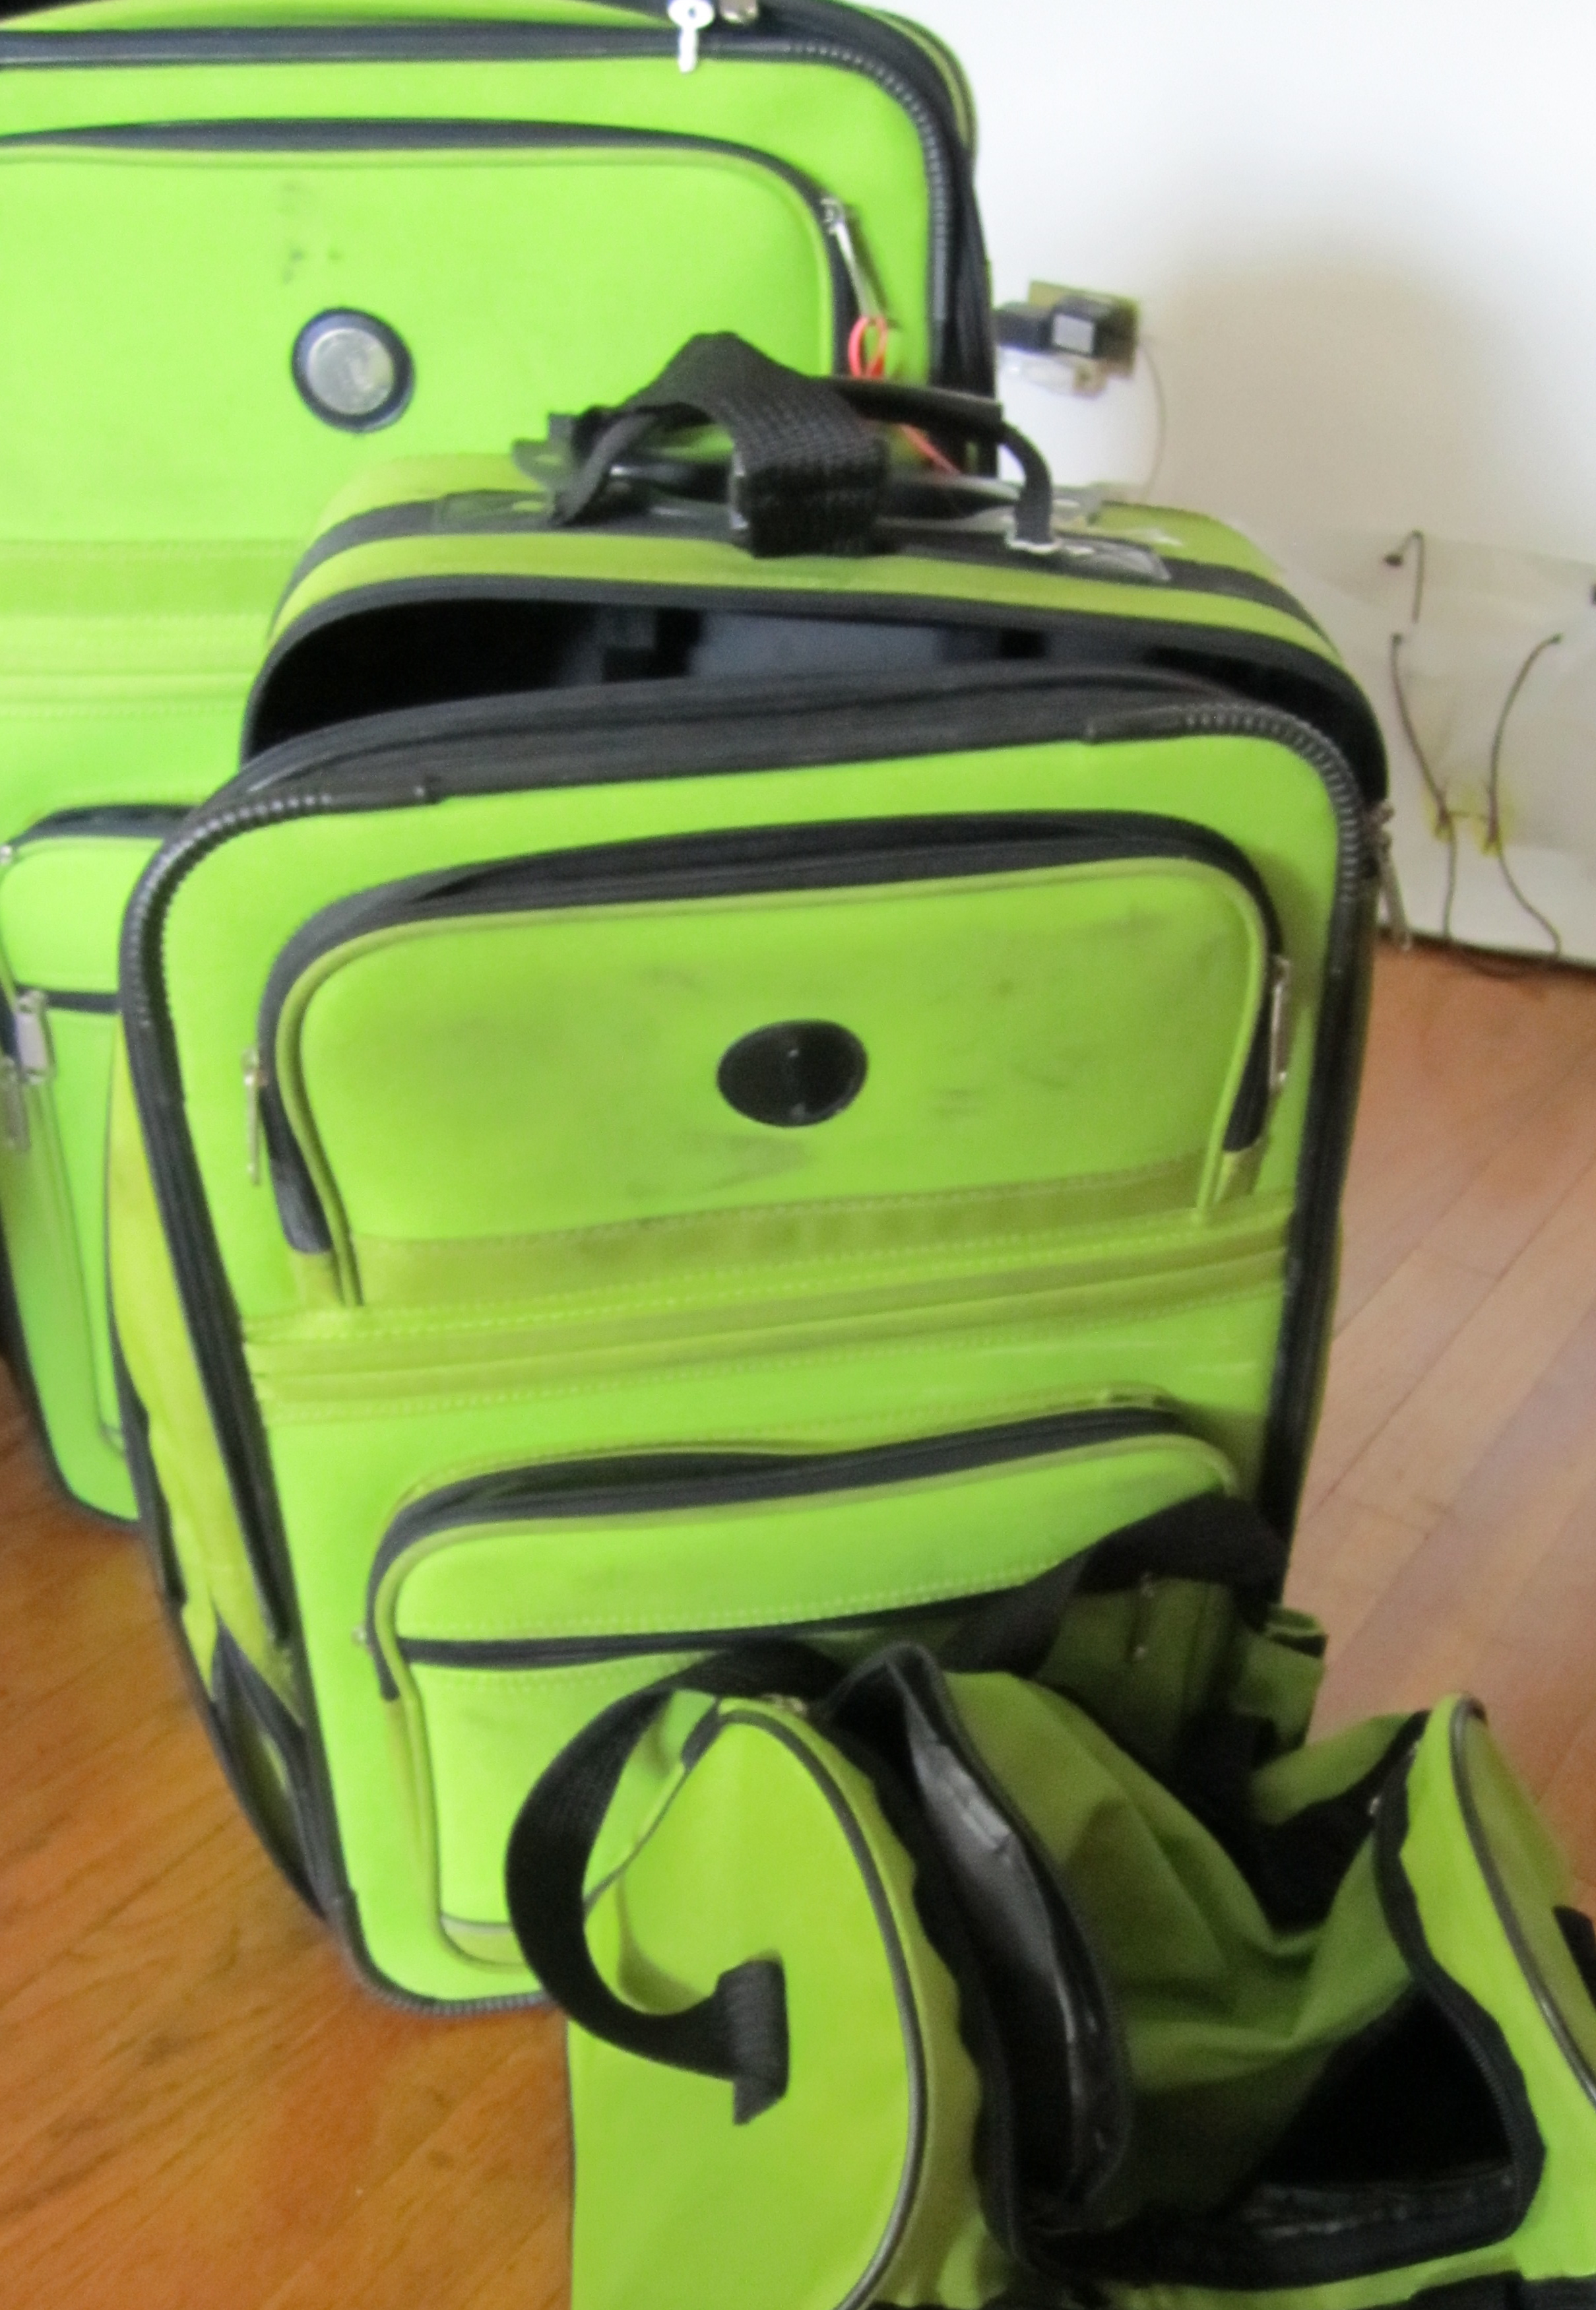 6 Ways to Avoid and Deal with Lost Luggage